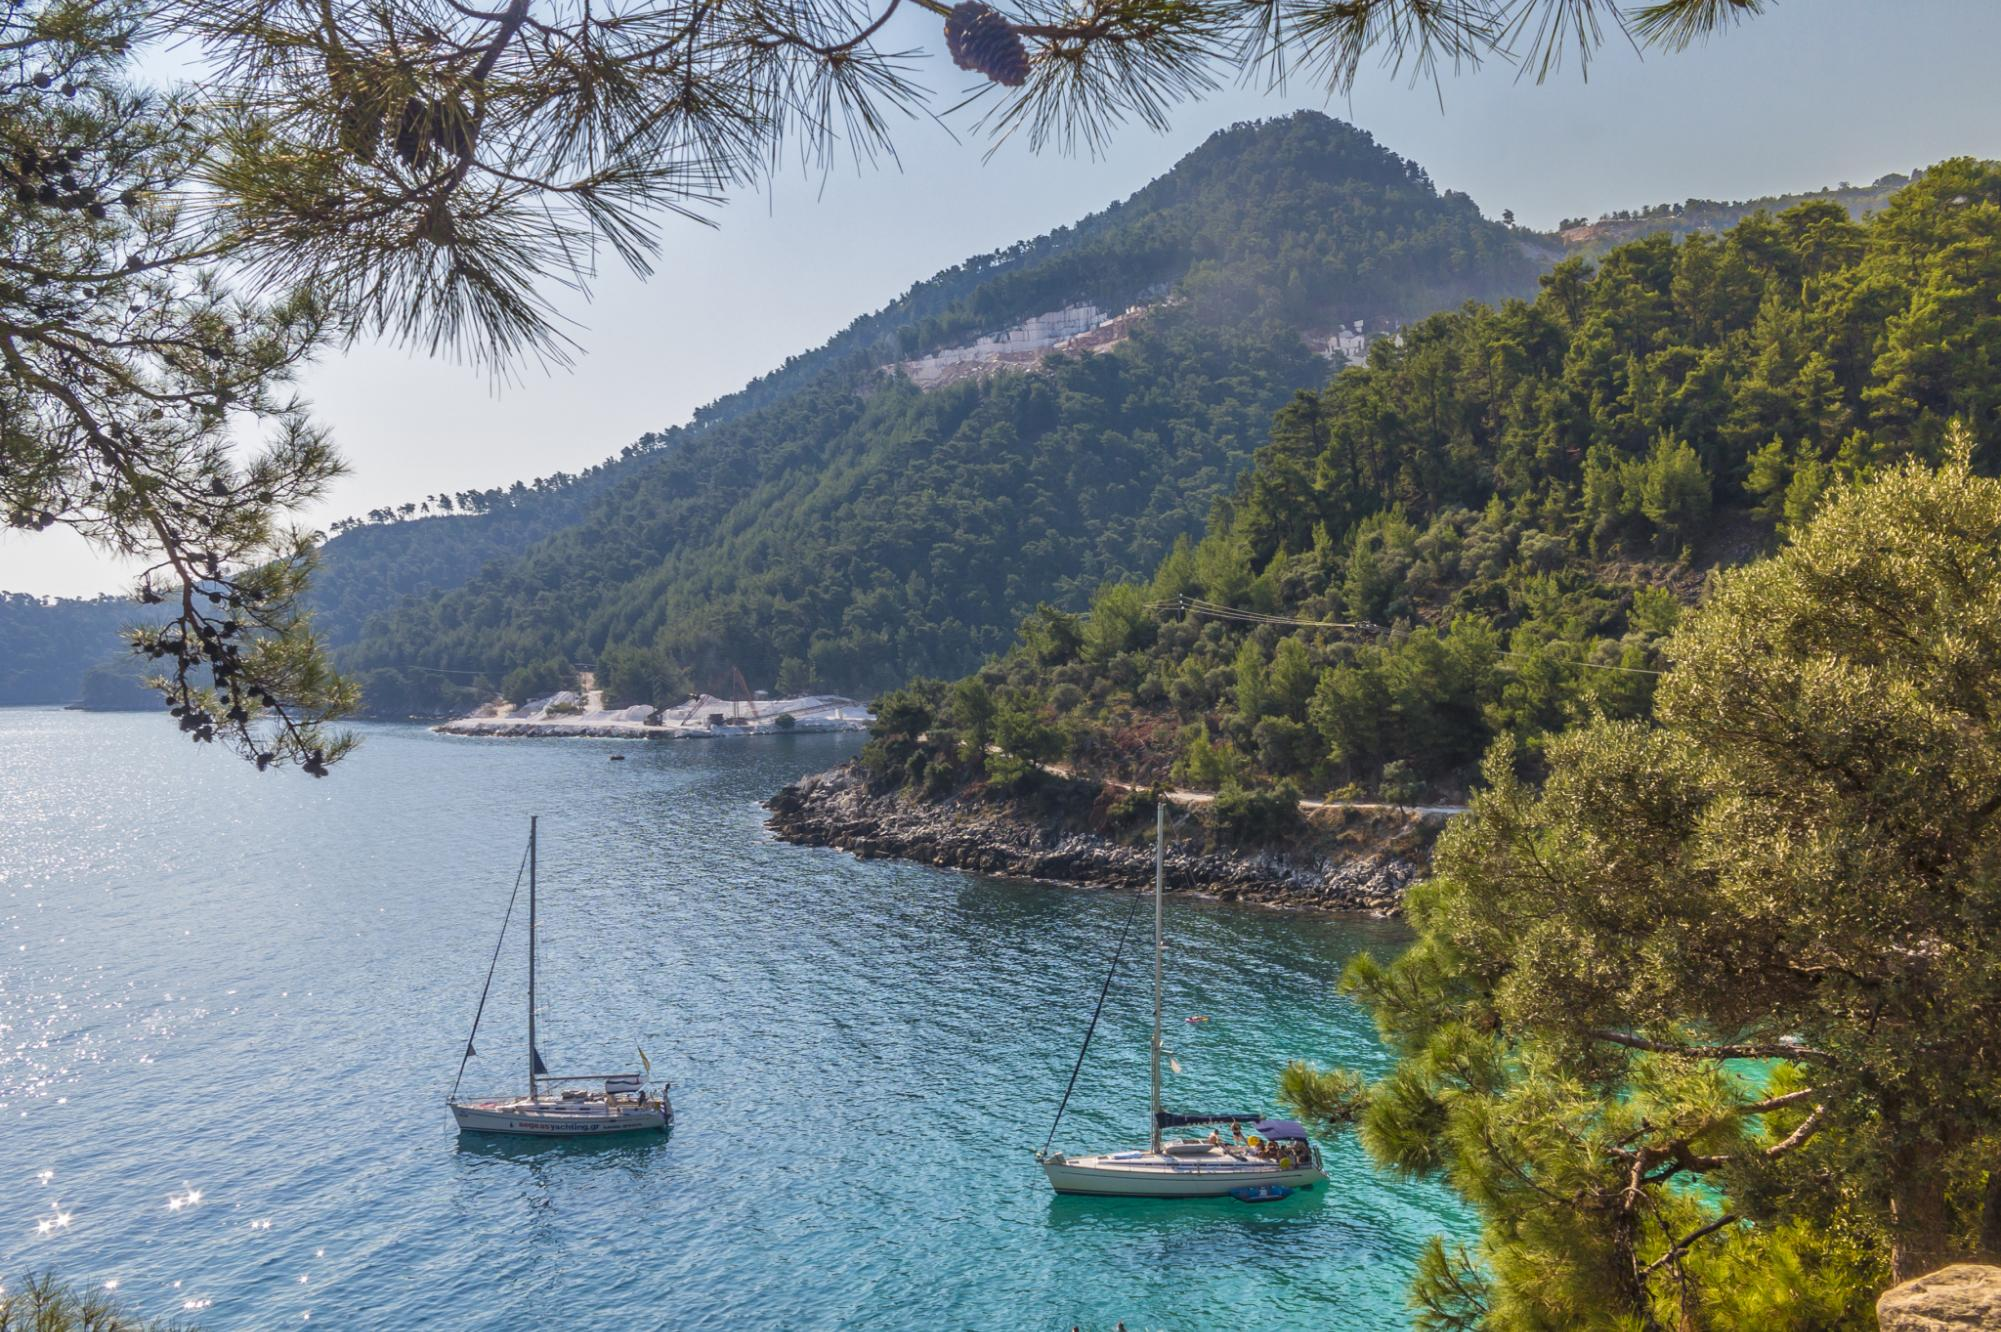 """<p><a href=""""https://www.thomascook.com/flights/"""" target=""""_blank"""">Thomas Cook</a> will fly to the Greek island of Thassos from Manchester in 2016. The weekly flights on Friday will cost from £140.29 return. Offering a traditional taste of Greece, the island has incredible scenery along with fine sandy beaches. Teamed with traditional villages and a very warm welcome, laid-back Thassos is as enjoyable for those seeking all-out relaxation as it is for culture vultures looking to explore.</p>"""